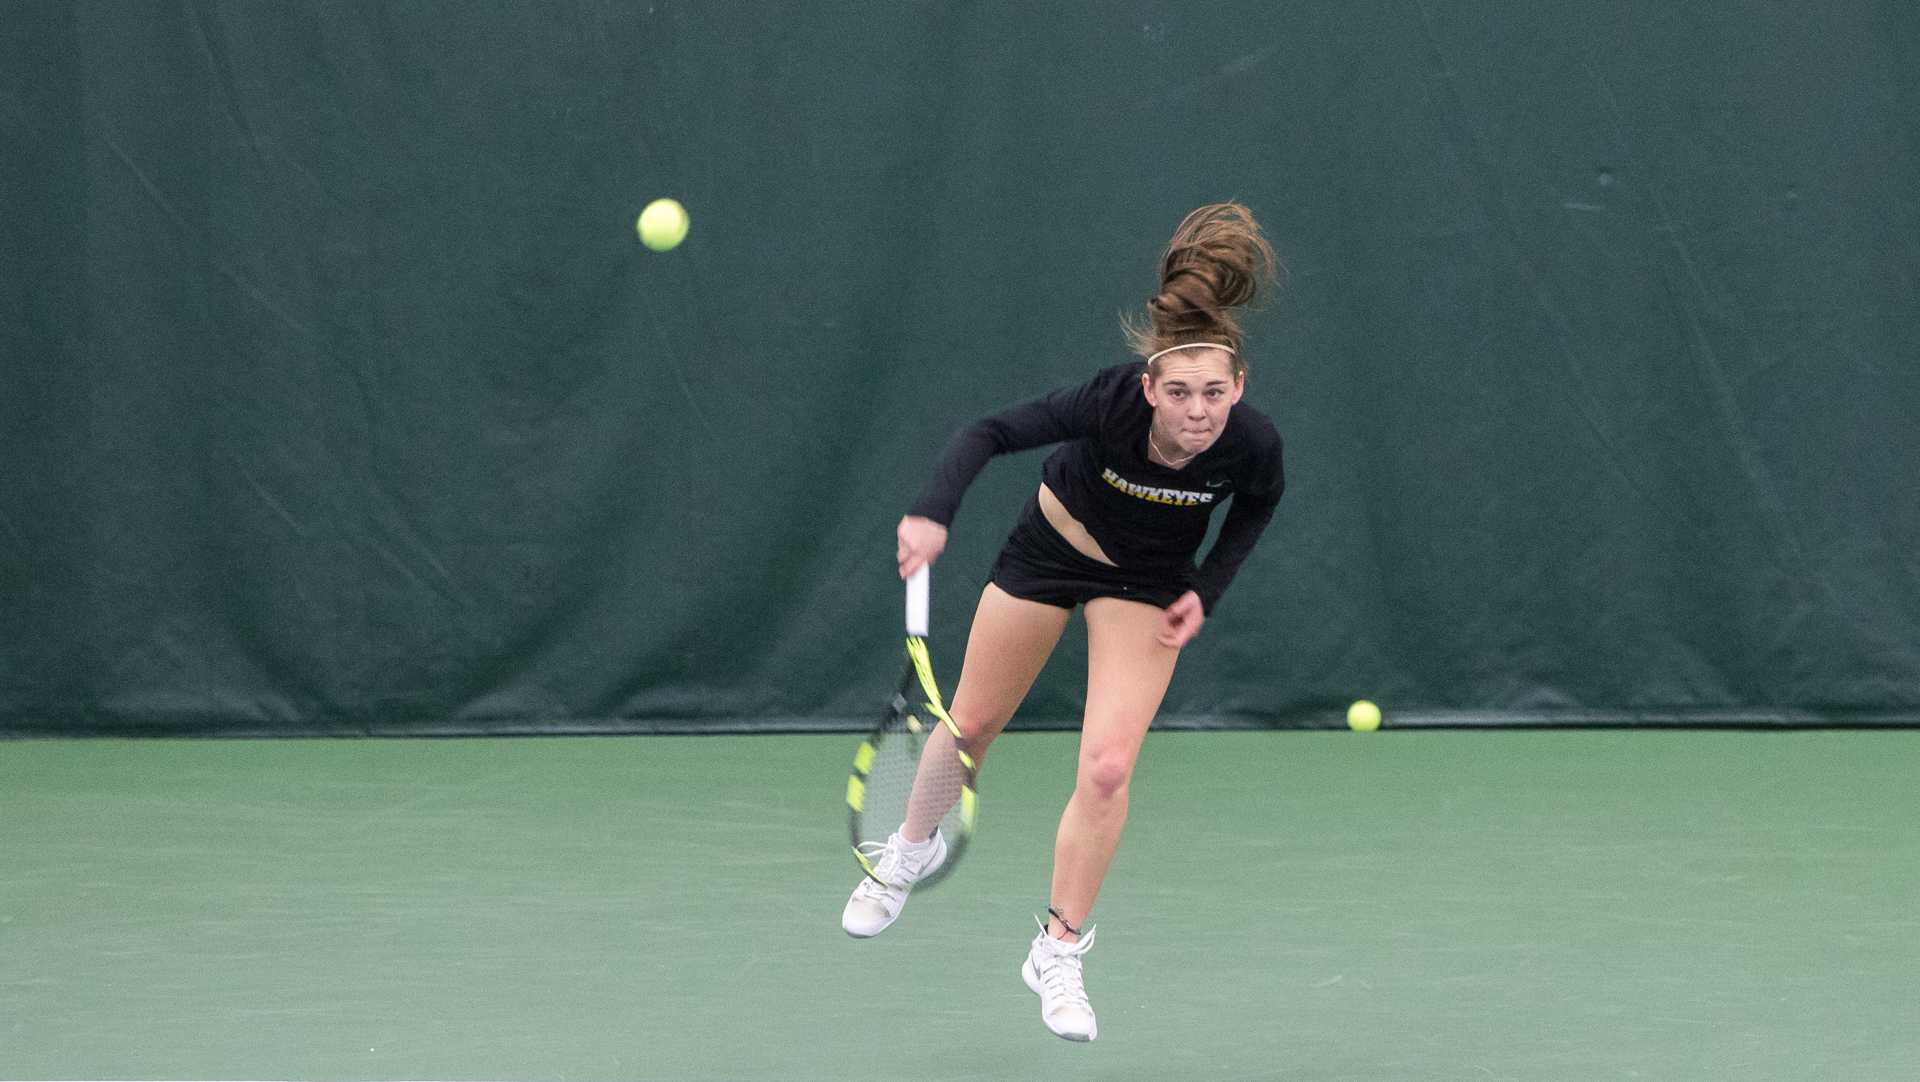 Iowa tennis player Zoe Douglas returns the ball during a match against Marquette University on Sunday, Feb. 25, 2018 at the Hawkeye Tennis Complex. Iowa swept the match and Douglas won her match 6-3, 6-3. (David Harmantas/The Daily Iowan)